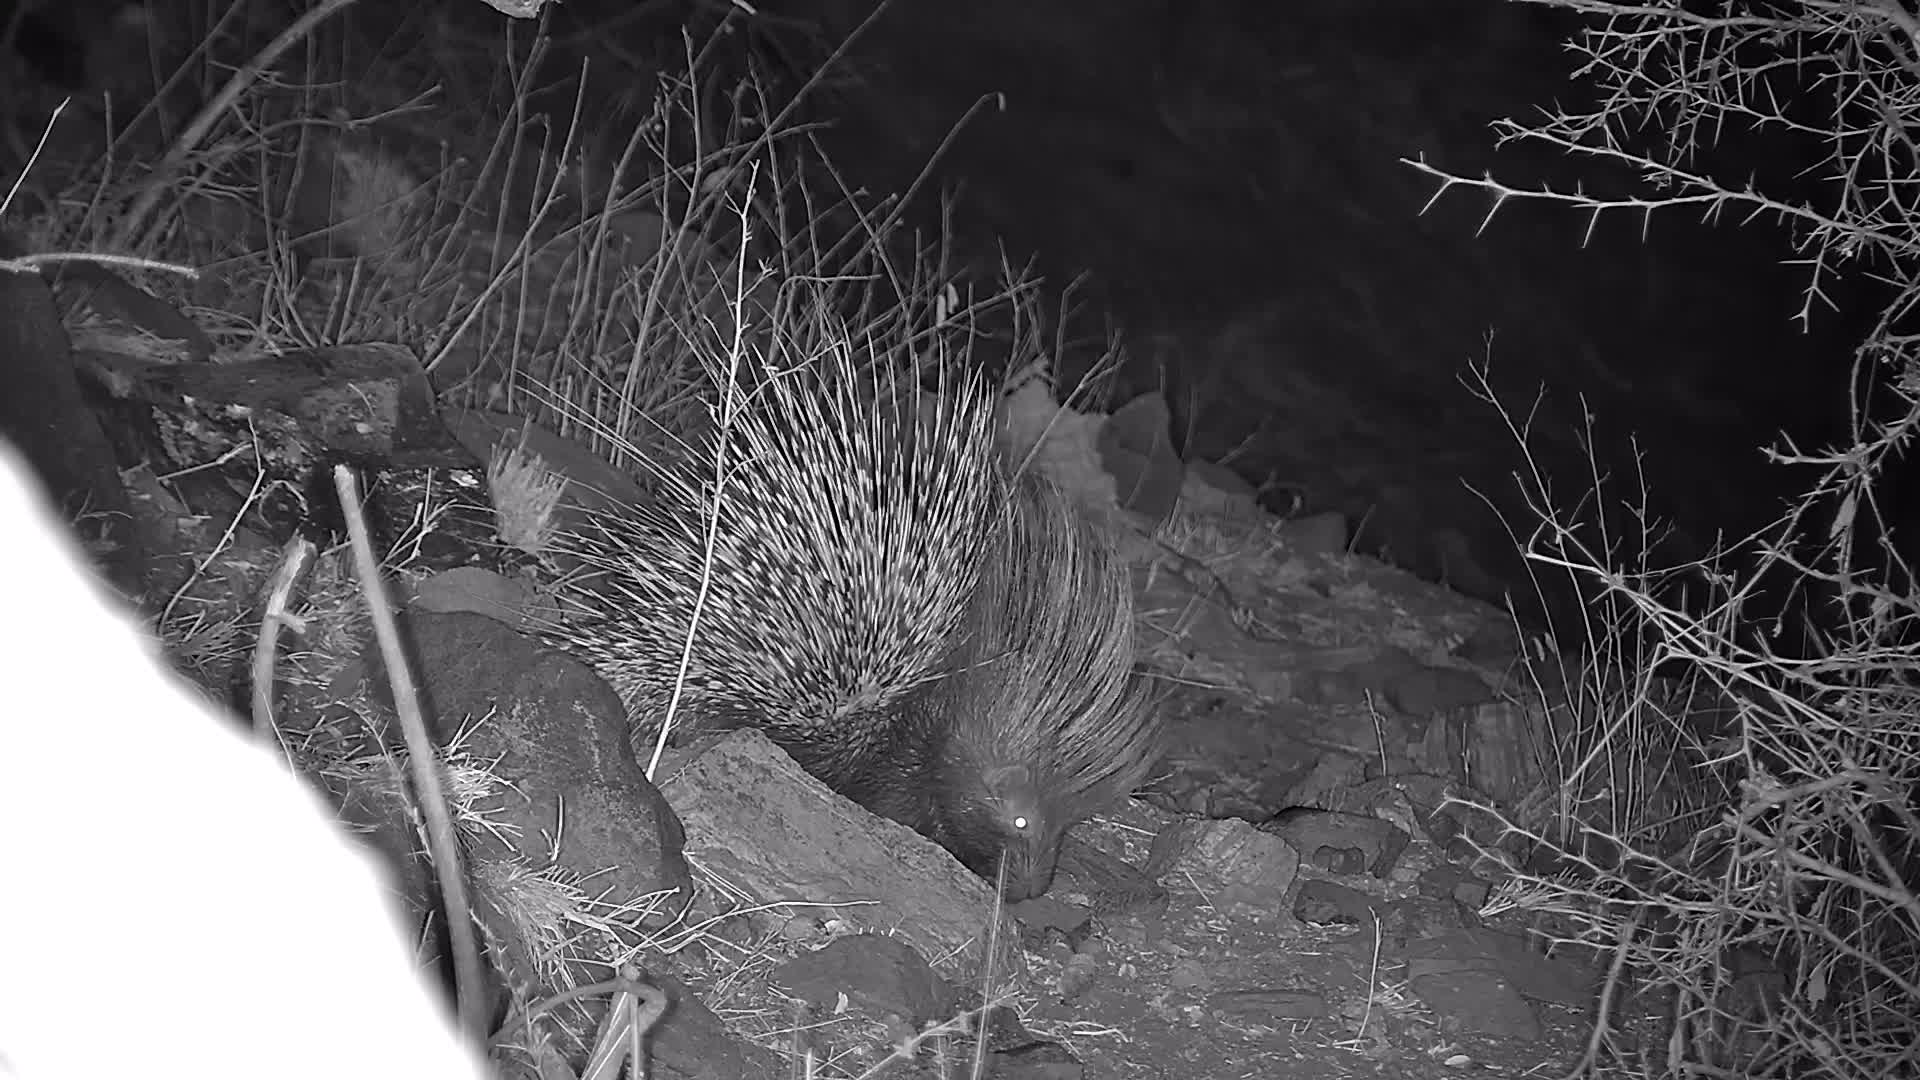 VIDEO: Porcupine found something tasty to eat